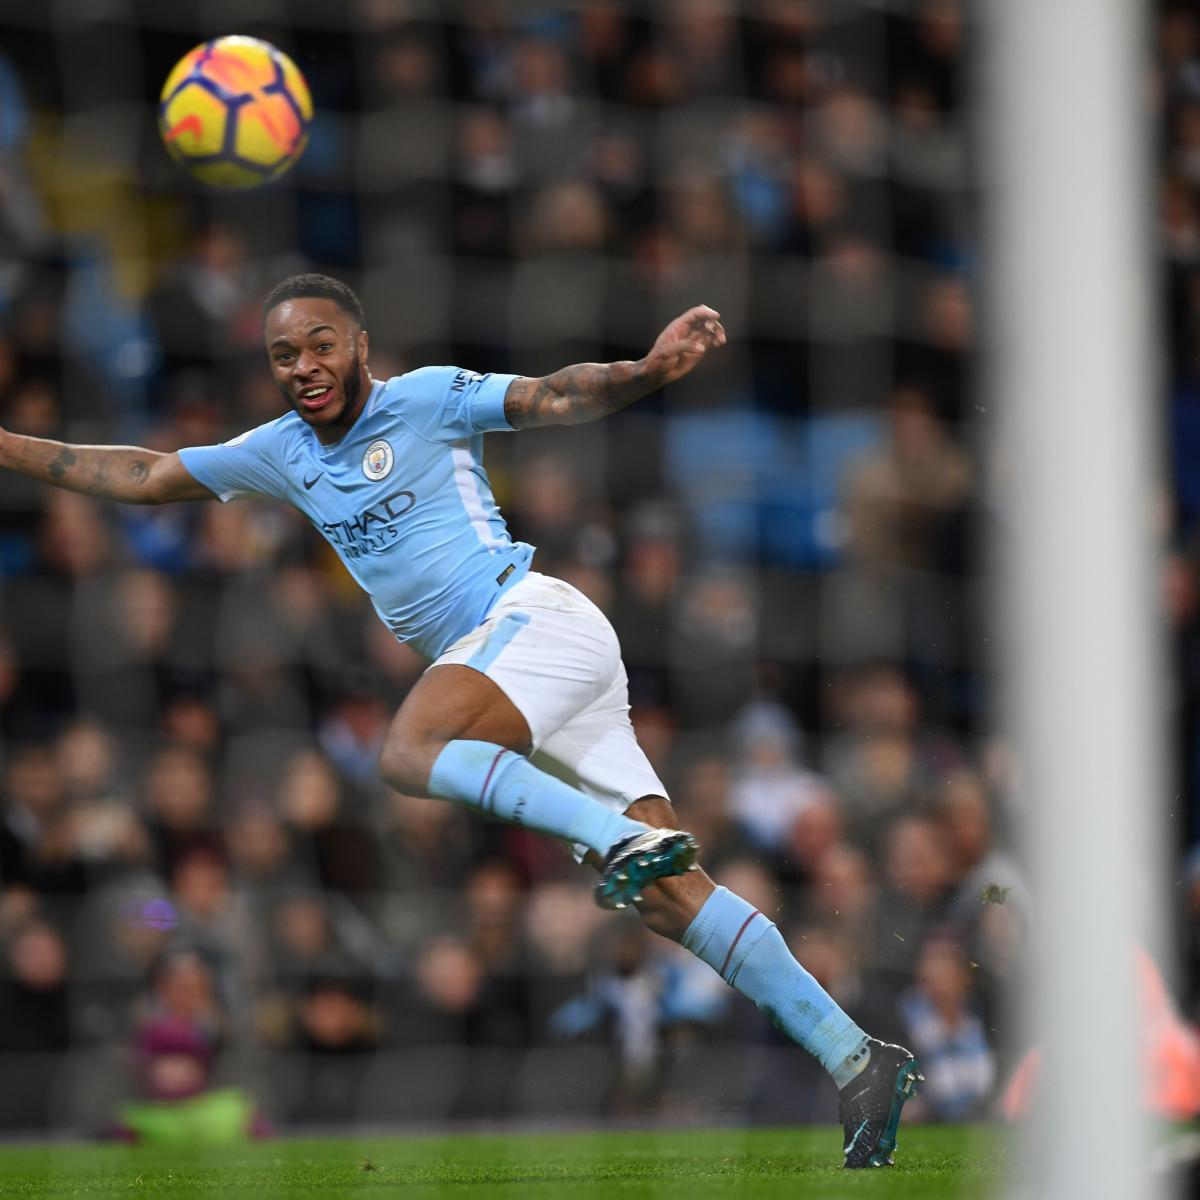 Premier league results 2018 epl week 22 scores table and top tuesday scorers bleacher report - Latest epl results and table ...